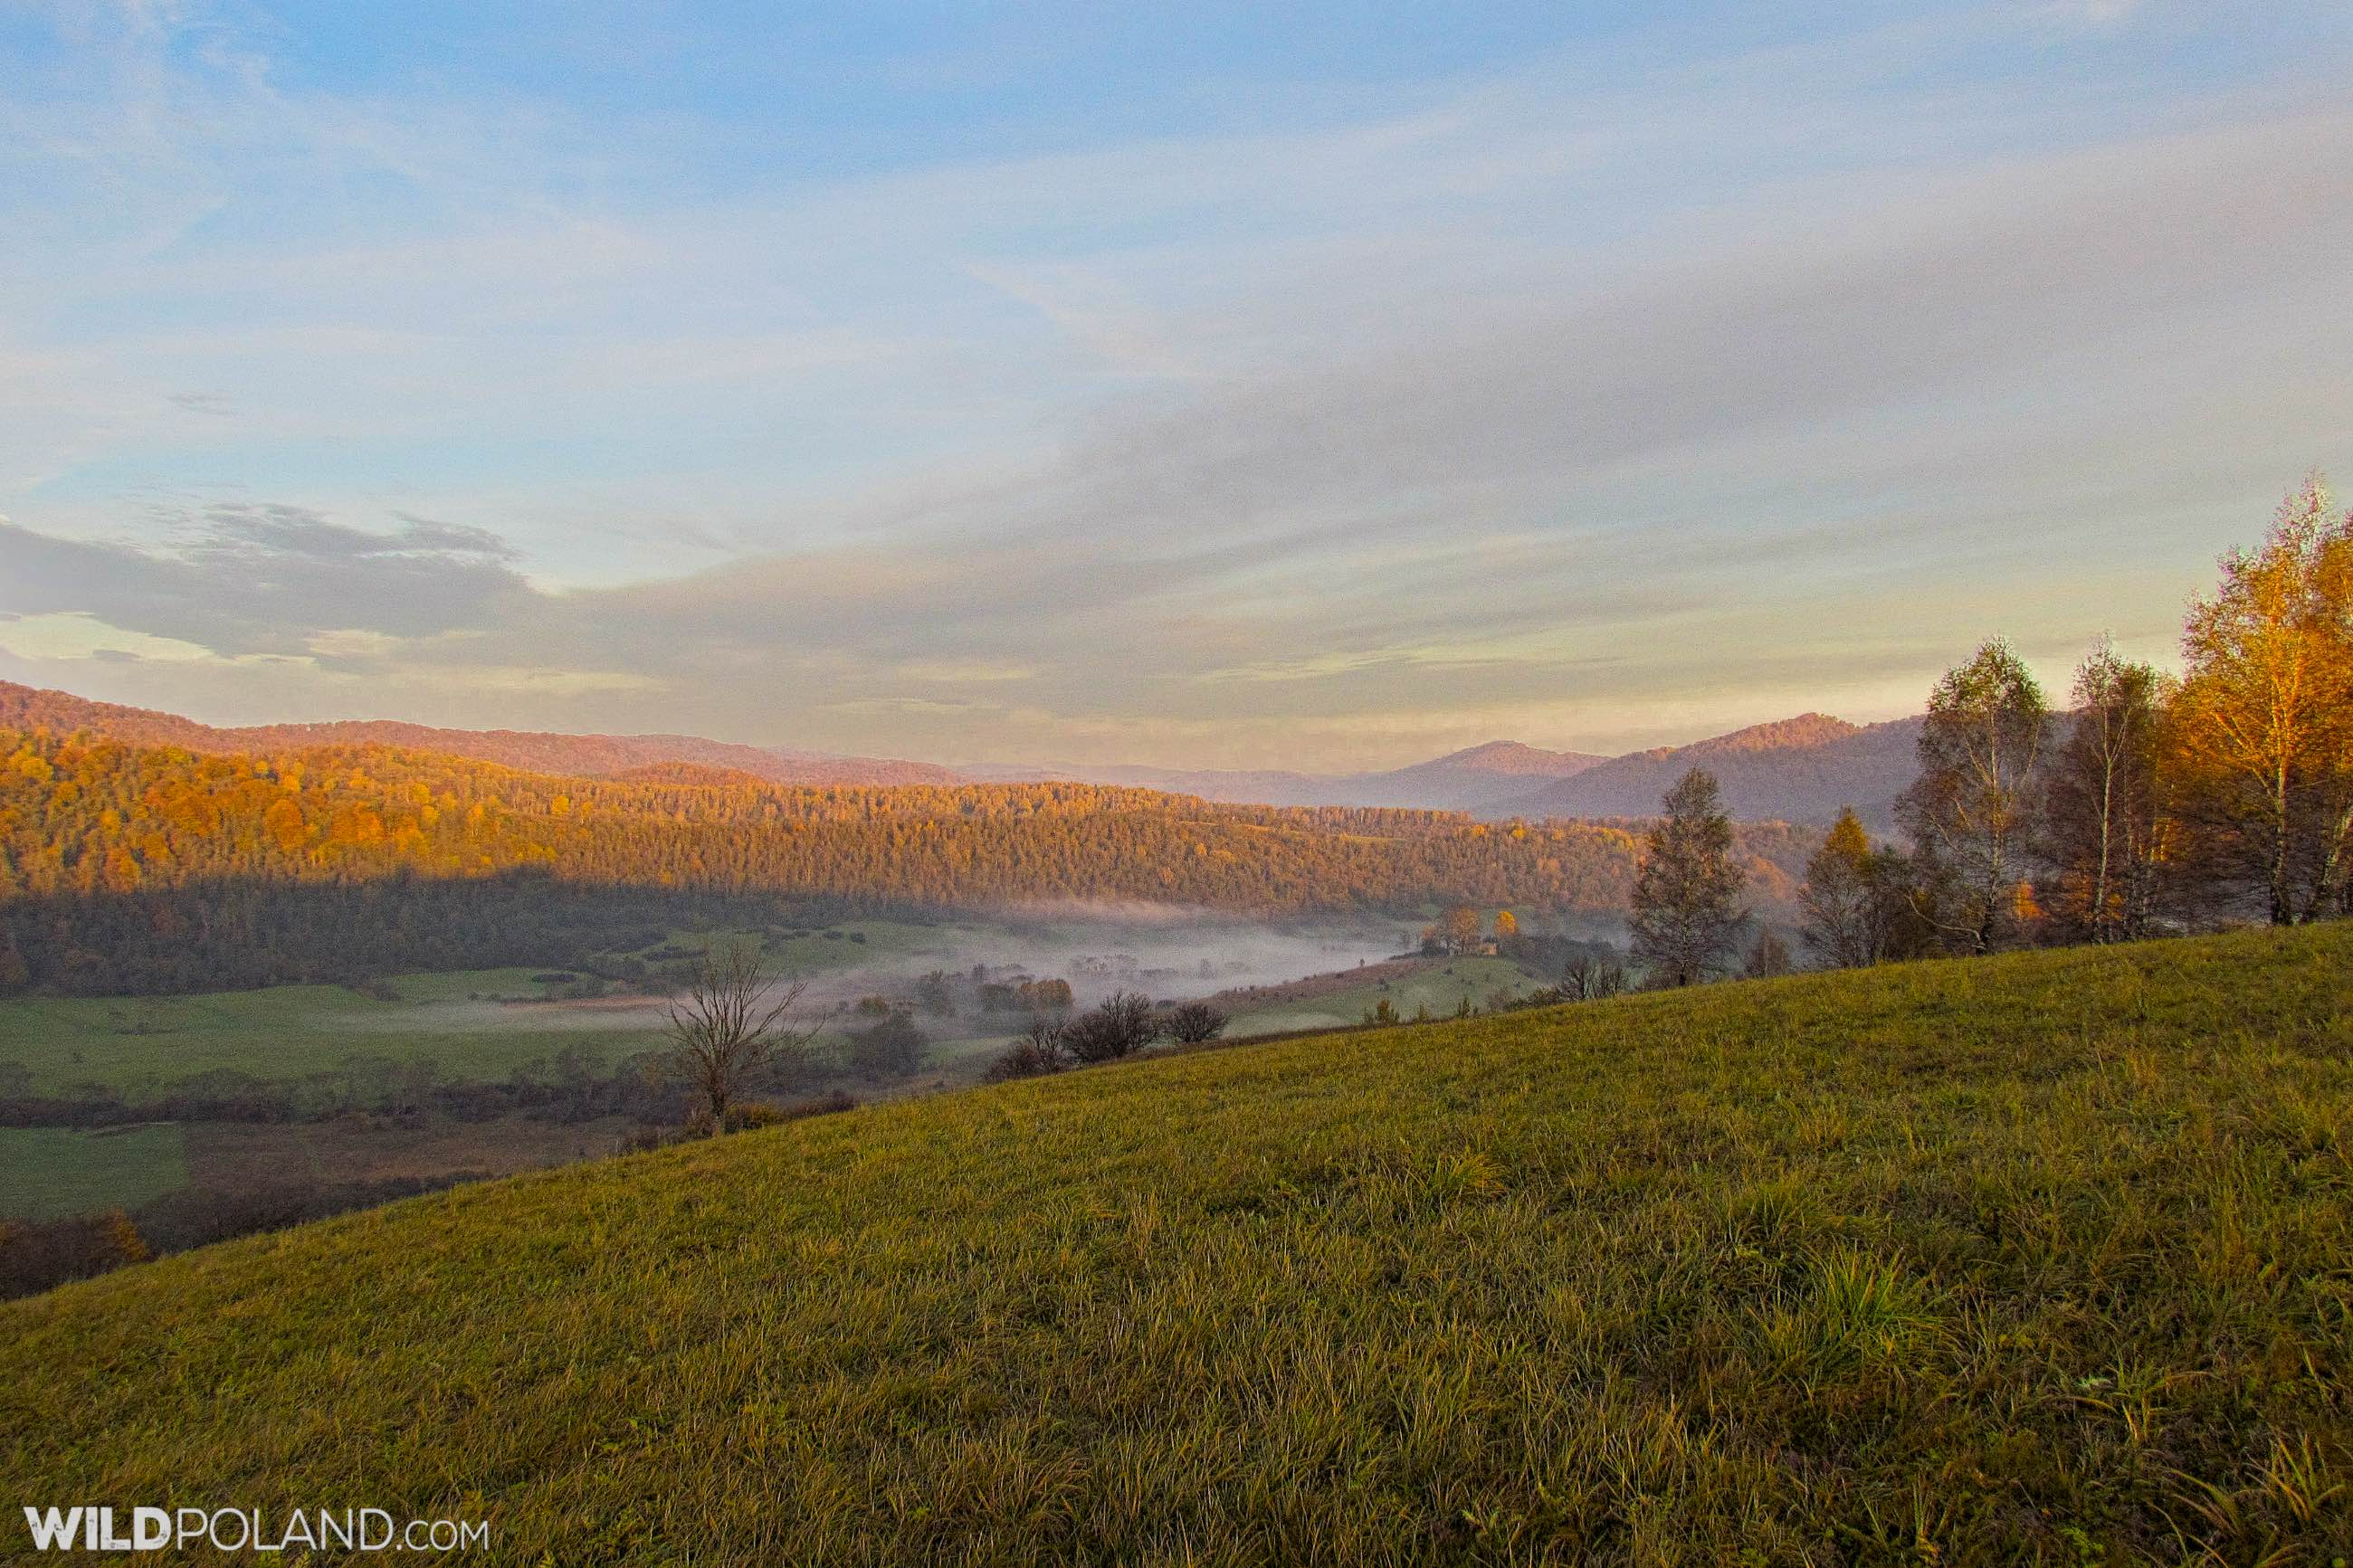 Sunrise in the Bieszczady Mts